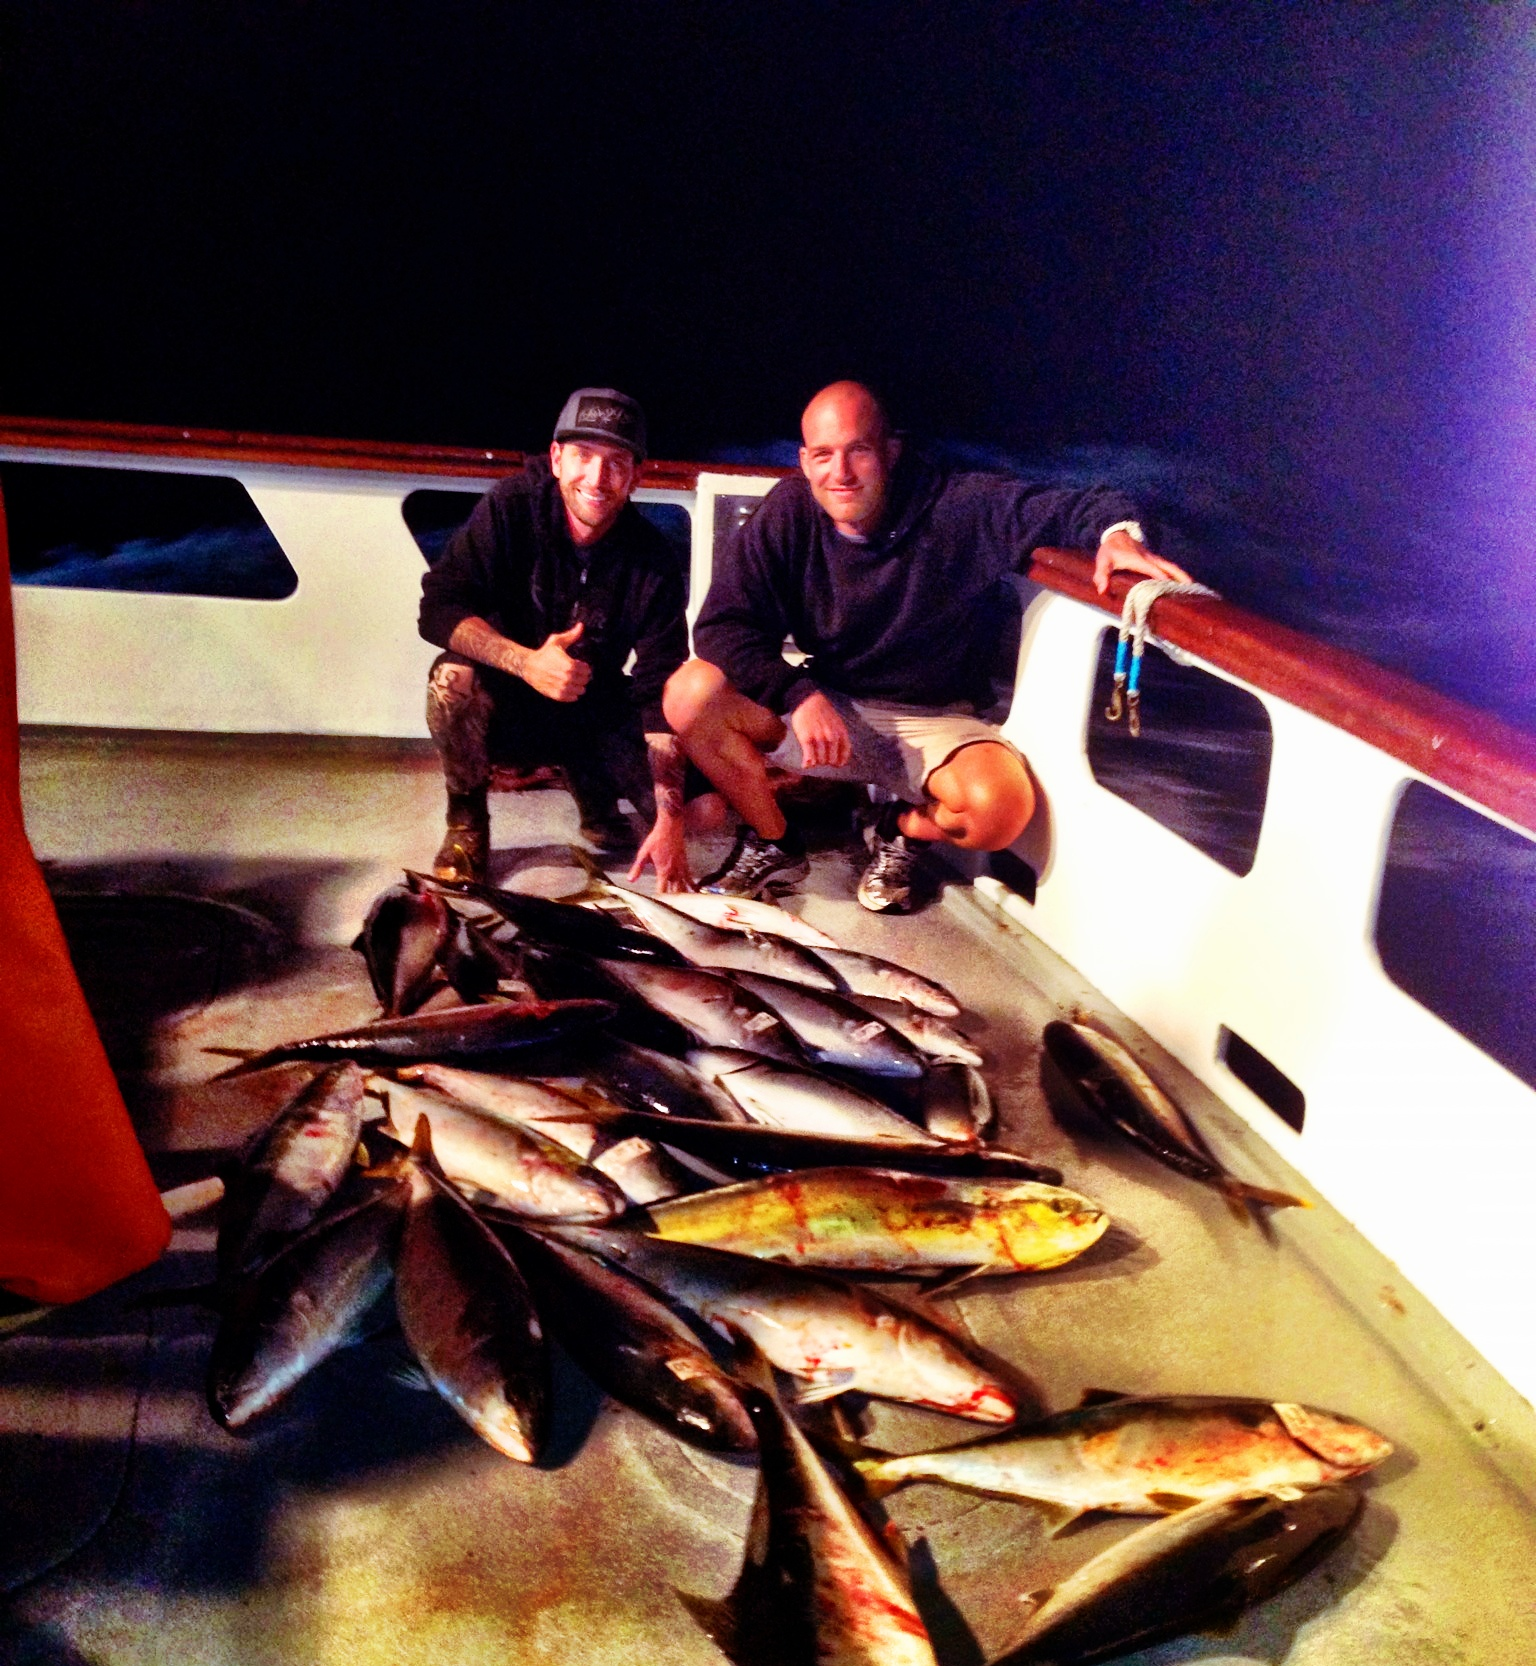 The boat's haul for the day. 7 of those belonged to us, not bad for a land dweller and his teacher.